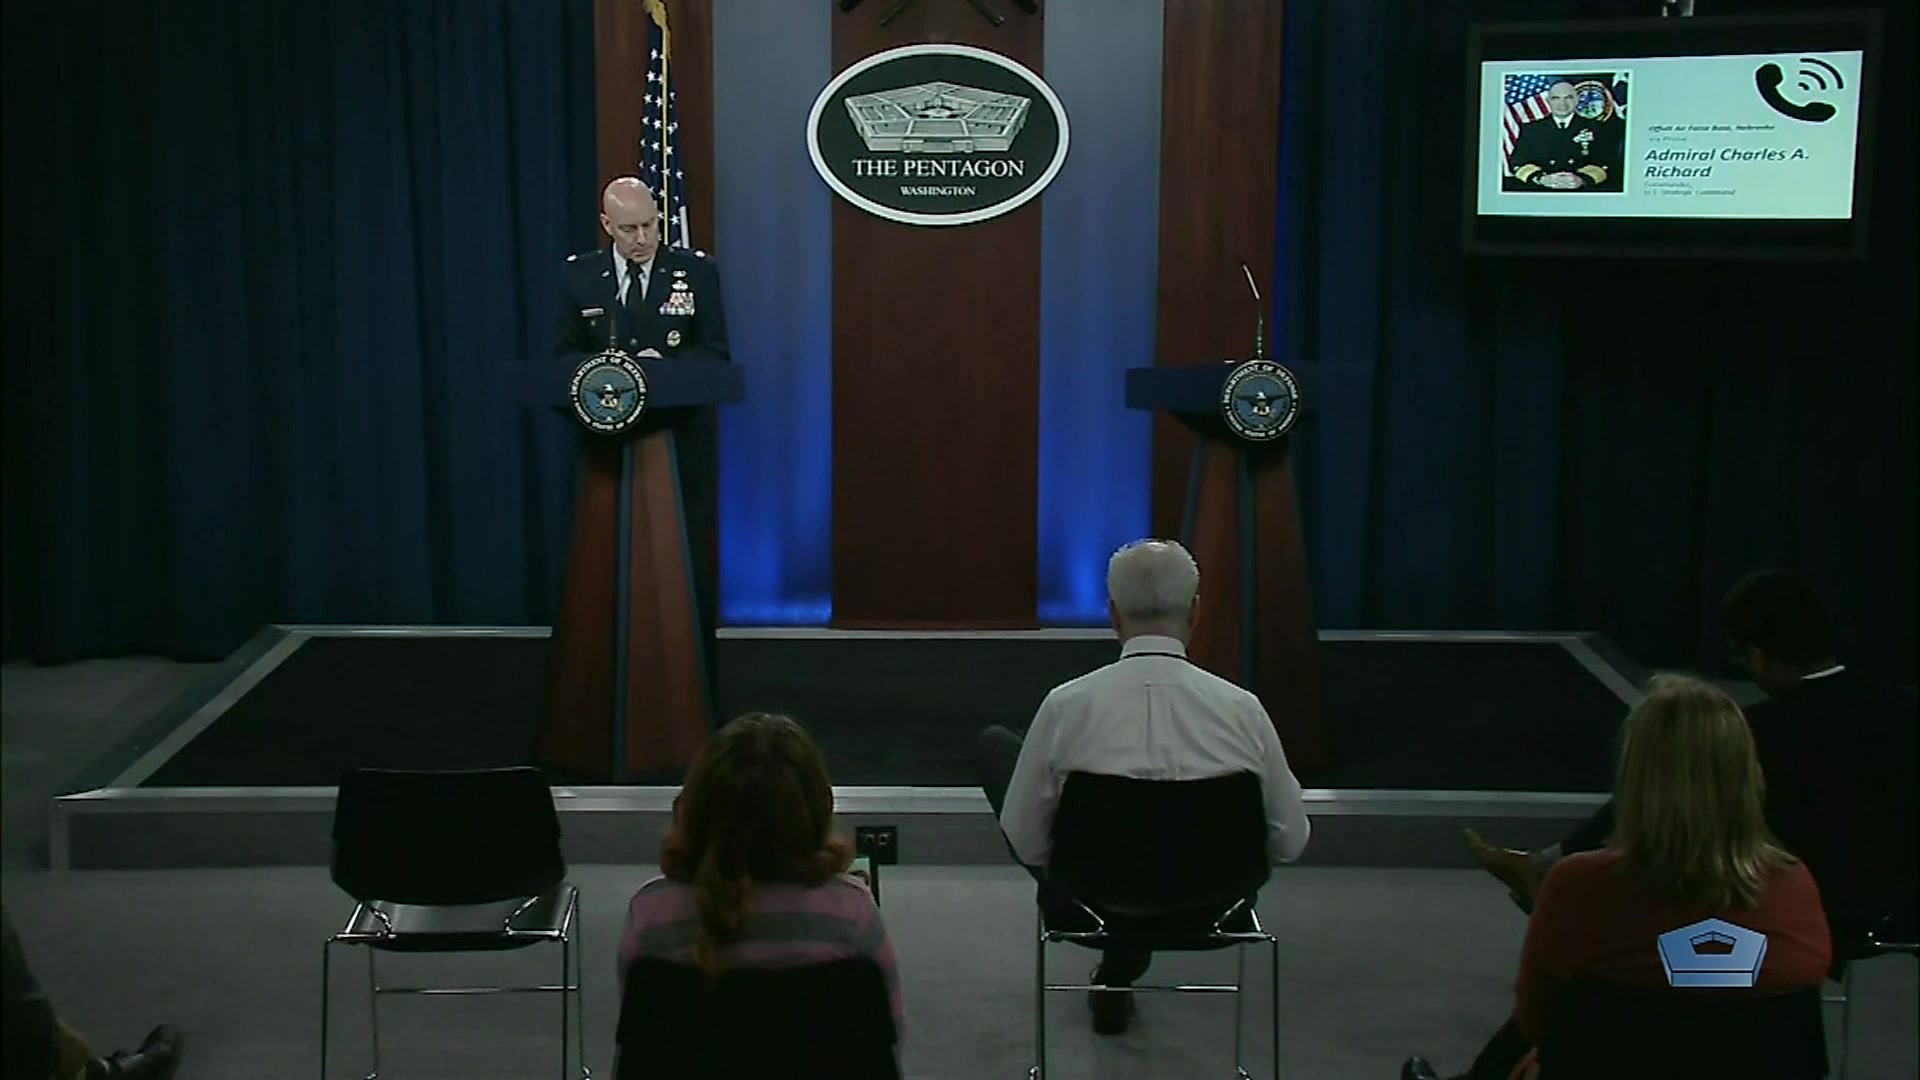 A service member stands at a lectern in a briefing room, as the photo of another one appears on an overhead screen.